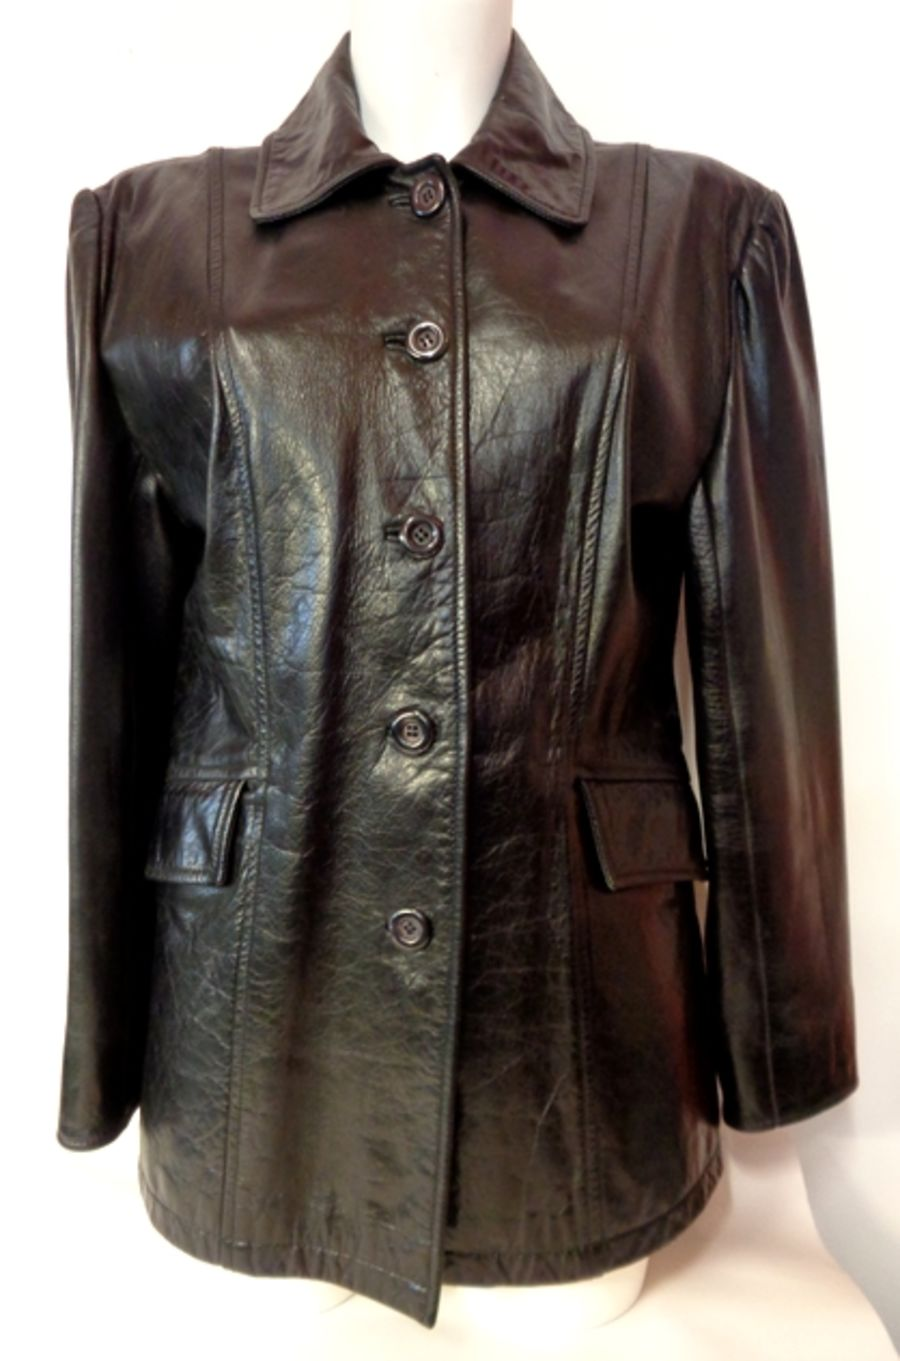 Vintage 1970's Black Mac Style Leather Jacket